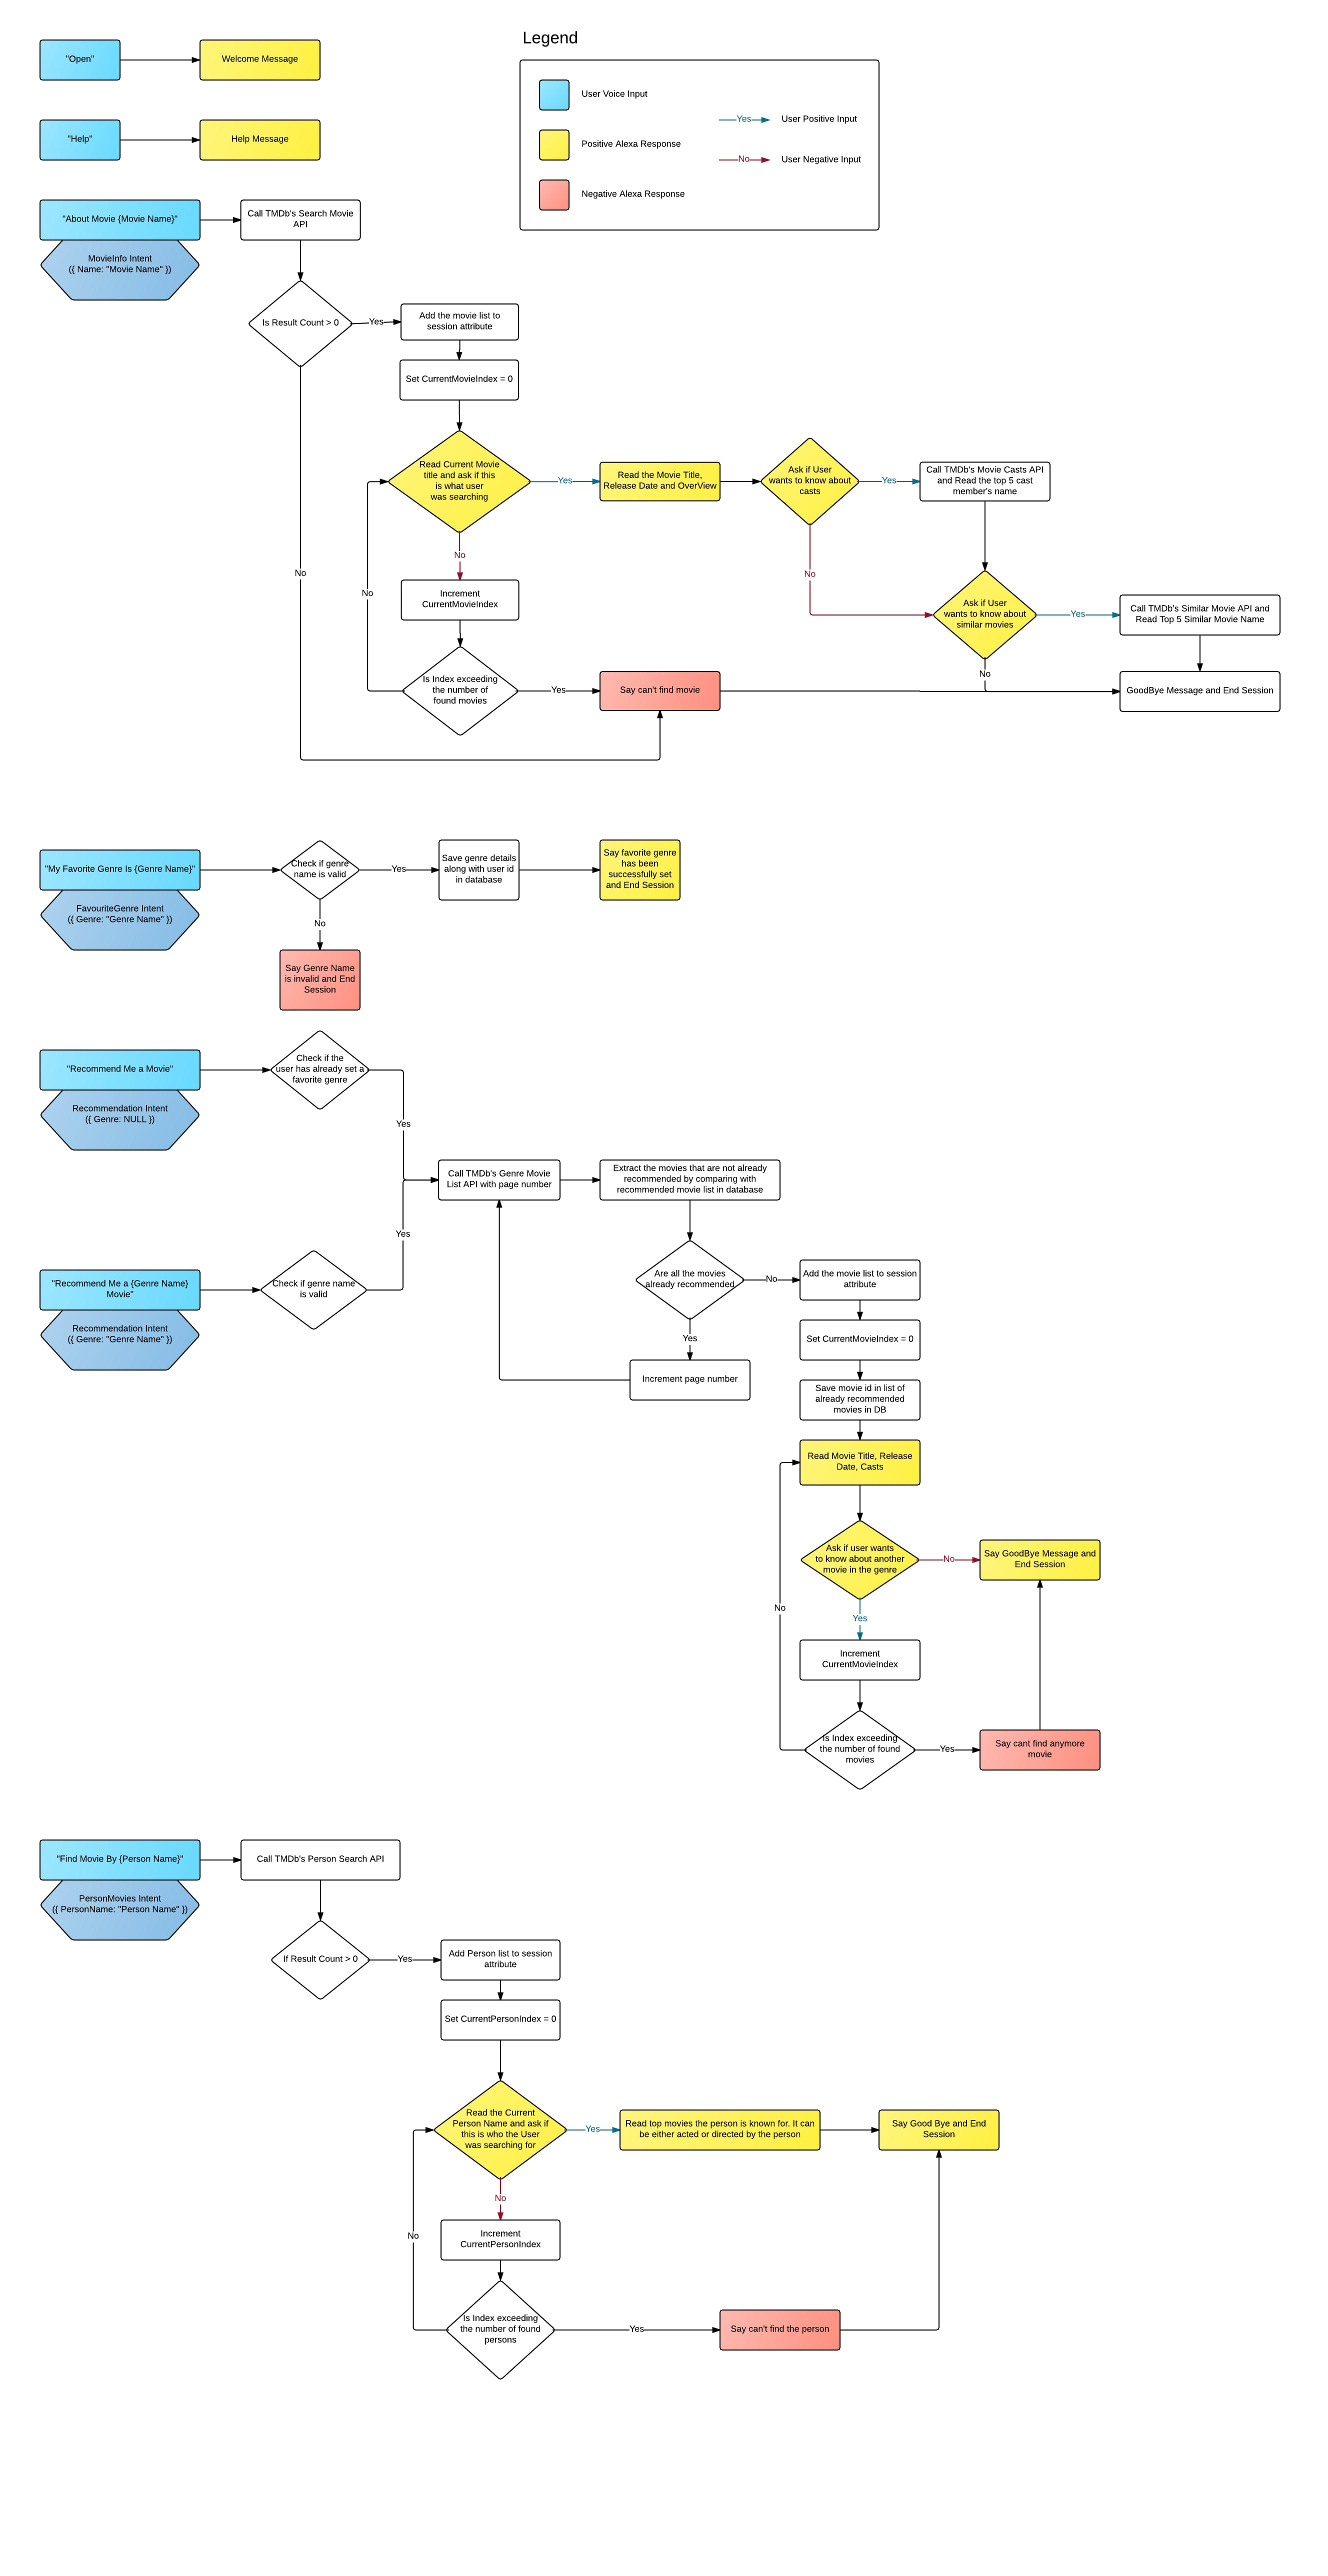 Flow Diagram (Download from Schematics of this article for clearer image)